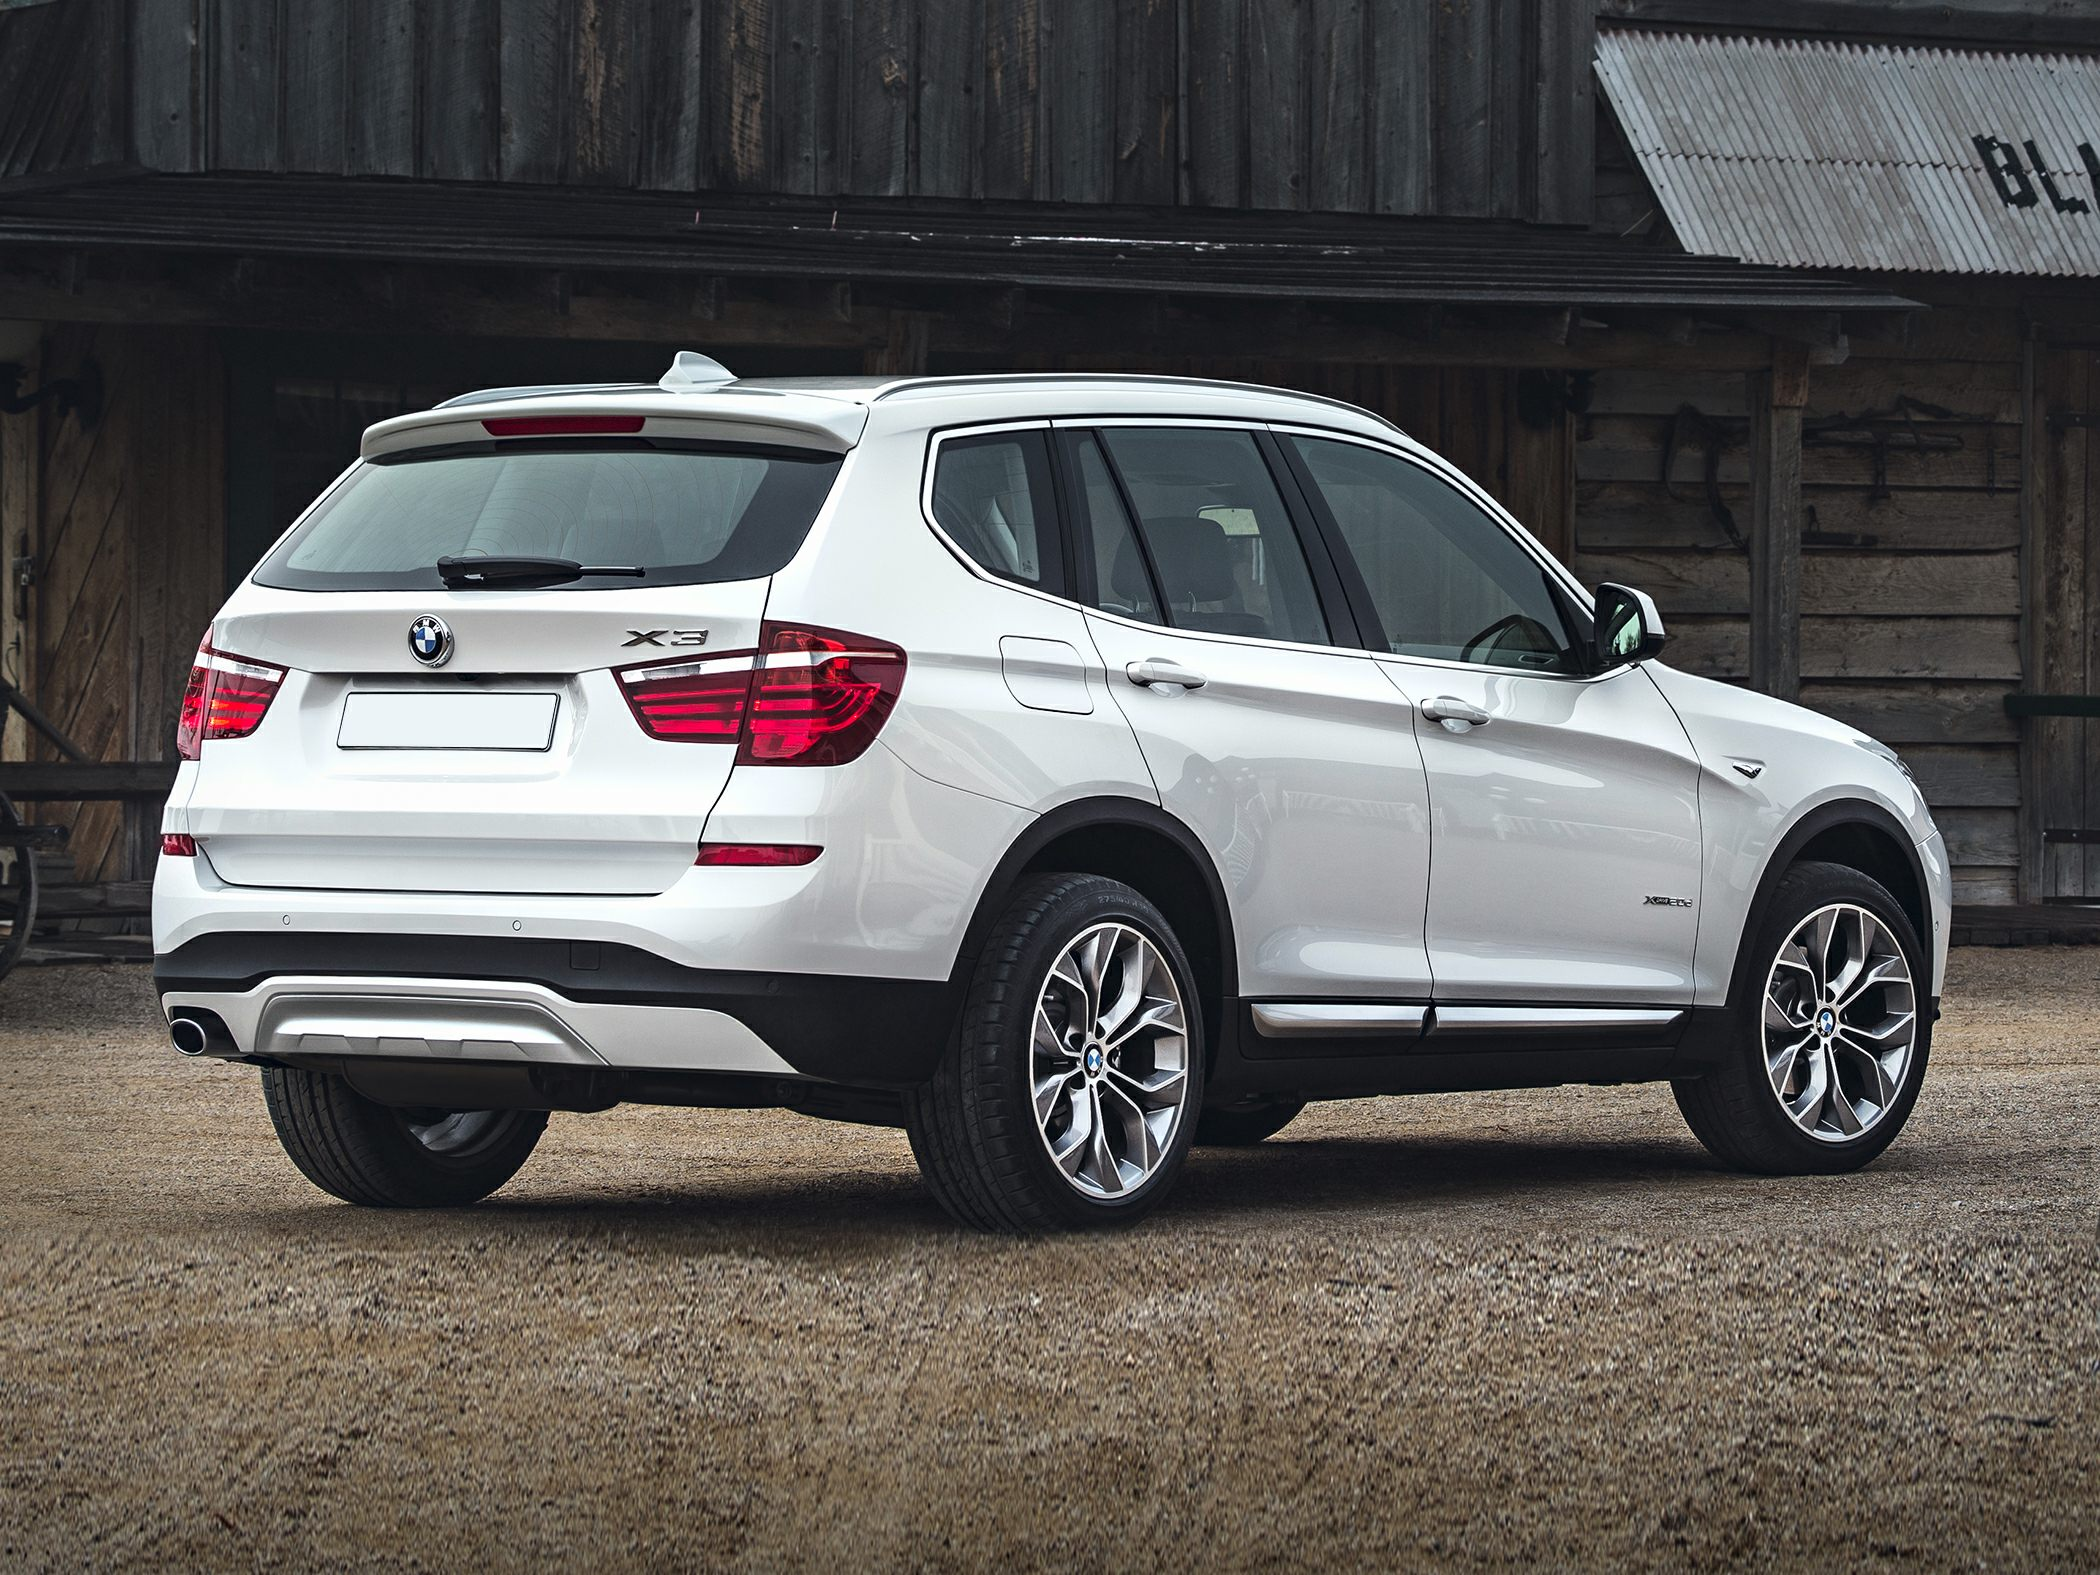 2017 bmw x3 deals prices incentives leases overview carsdirect. Black Bedroom Furniture Sets. Home Design Ideas